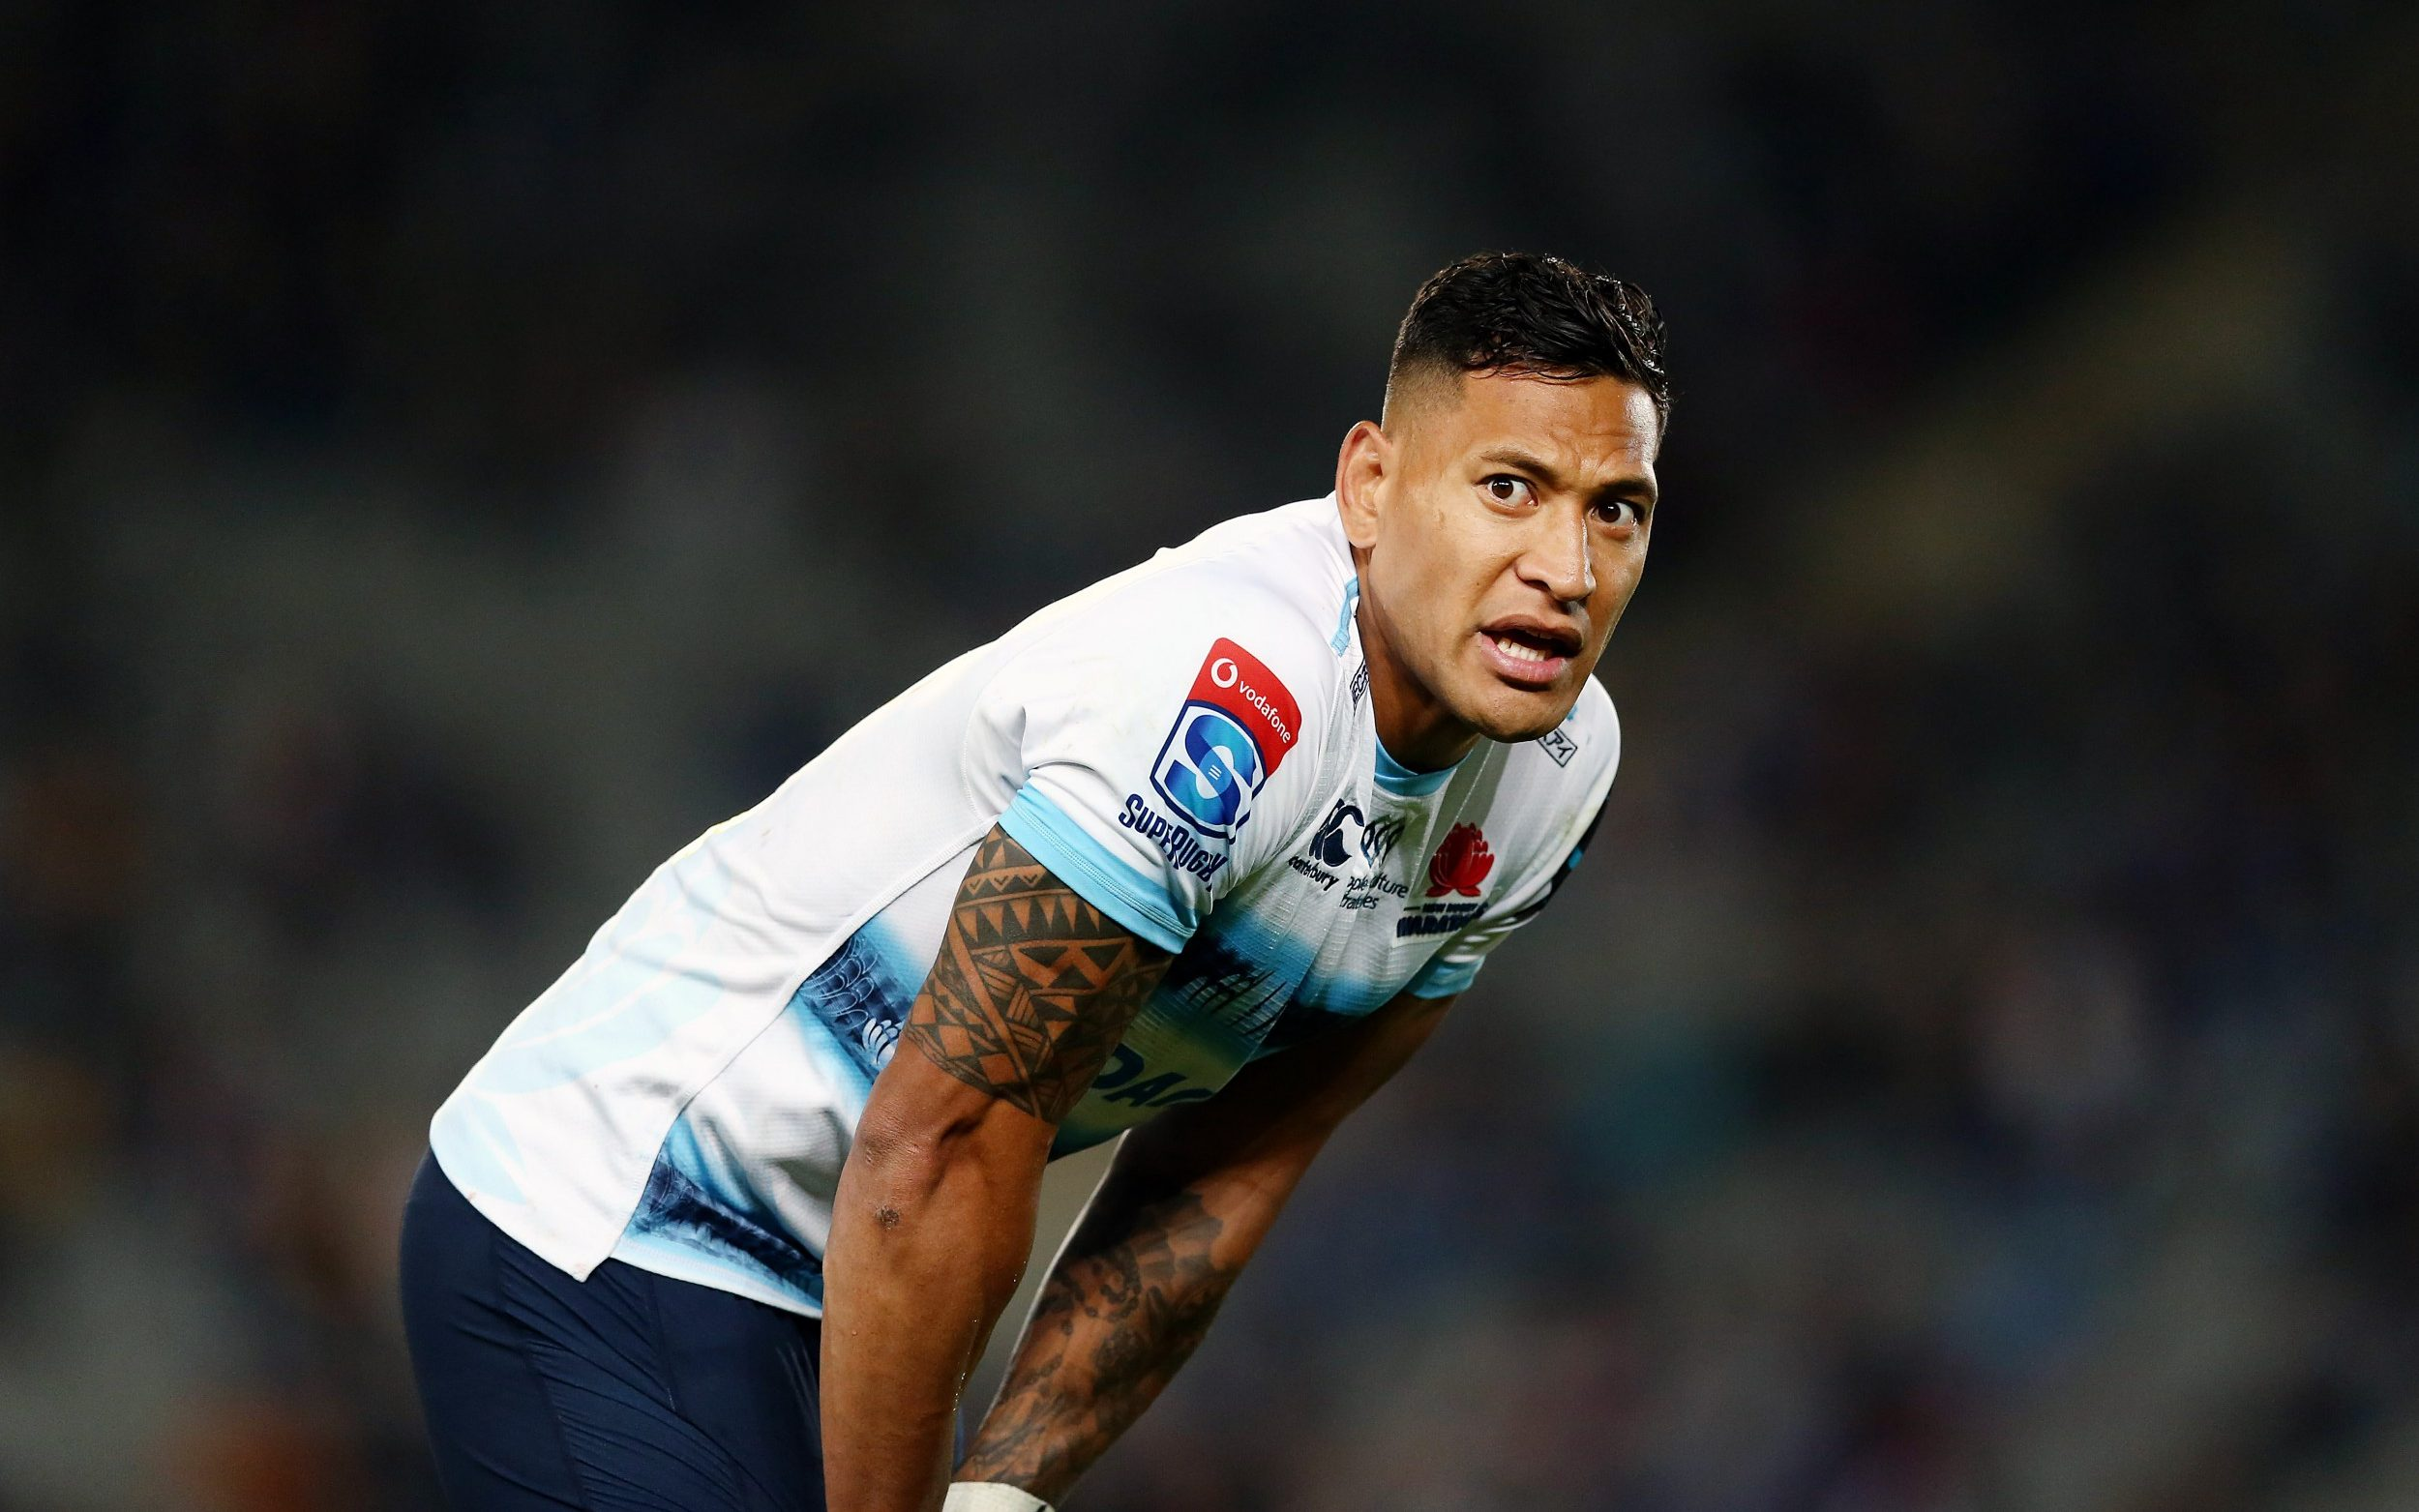 Religious Beliefs Or Not Israel Folau And The Rest Of